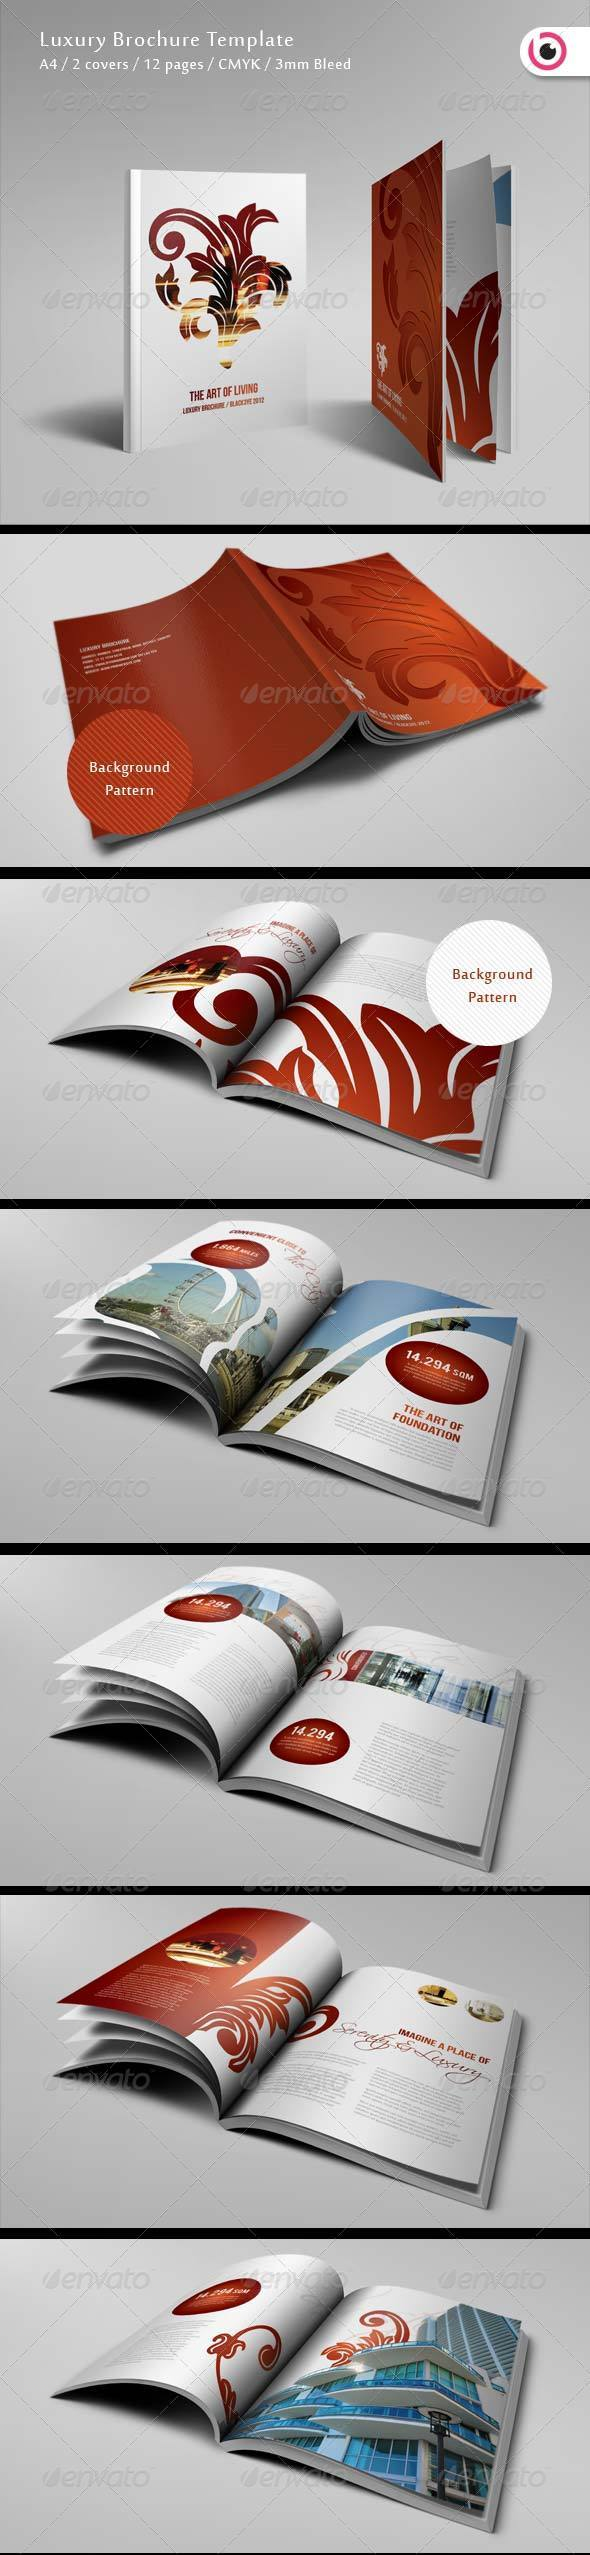 luxury brochure template 12 pages corporate brochures brochure